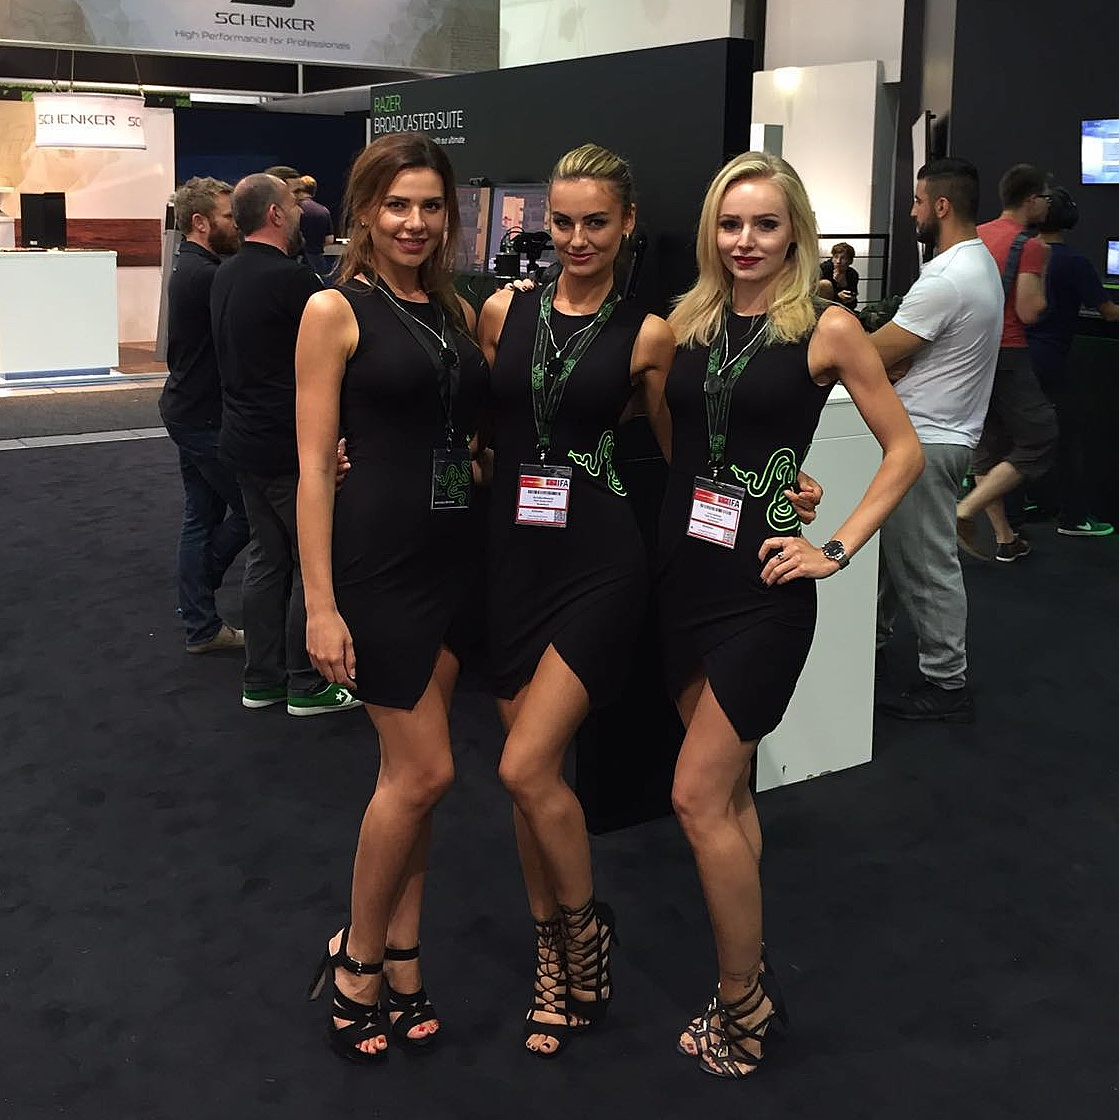 razer girls gaming ifa internationale funkausstellung promotion girls wanted girlssearch castingrazer girls gaming ifa internationale funkausstellung berlin promotion girls wanted girlssearch casting